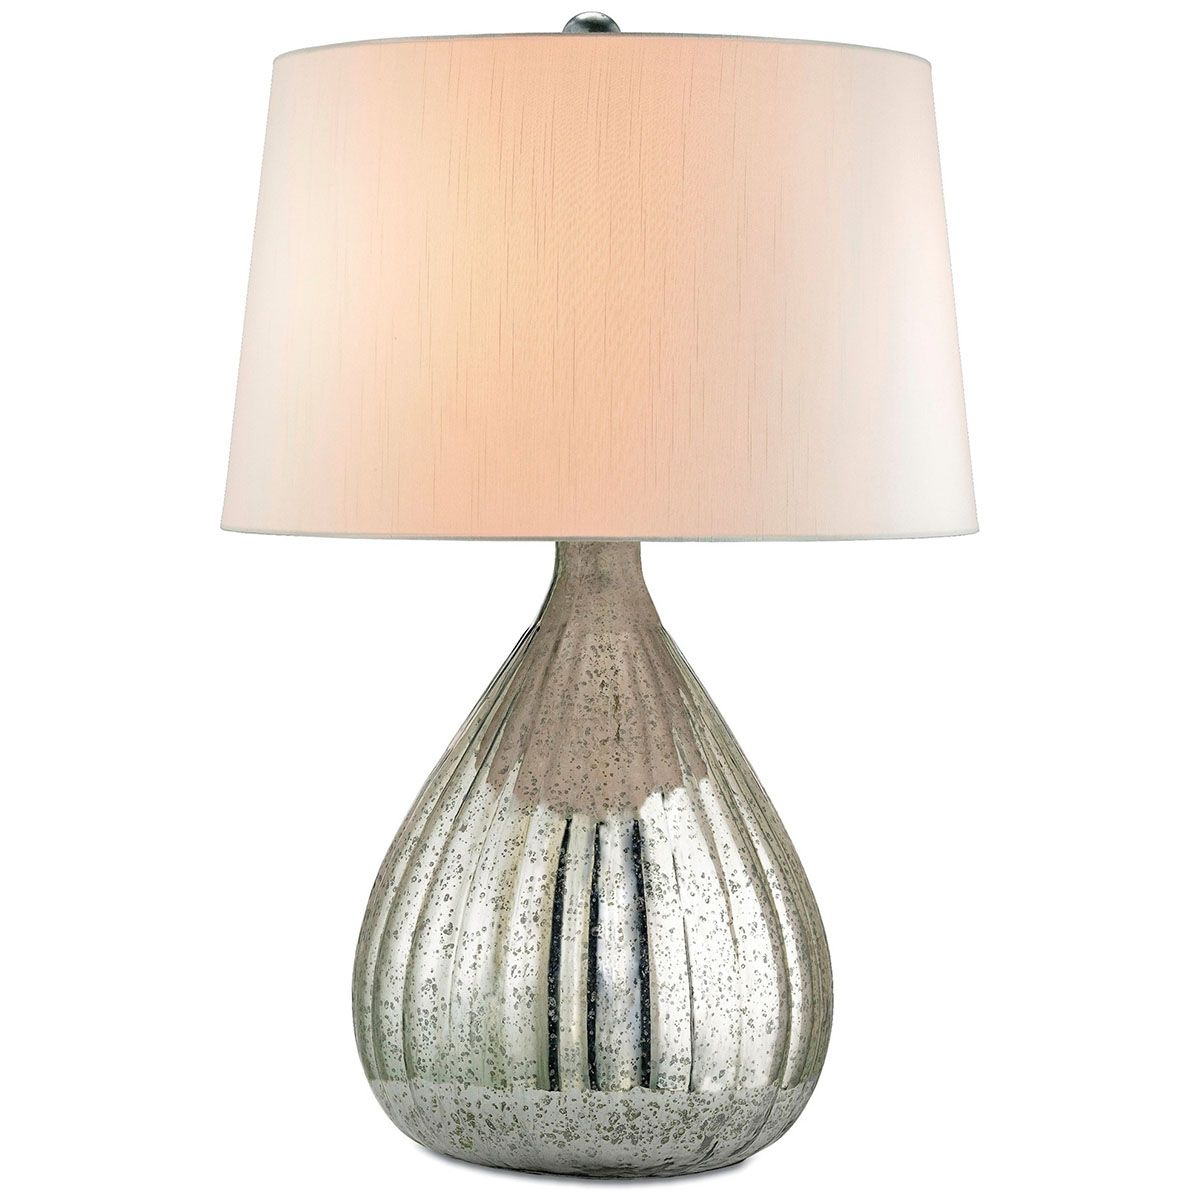 Currey Company Oxendale Table Lamp Cc 6206 Silver Table Lamps Table Lamp Design Beautiful Floor Lamps